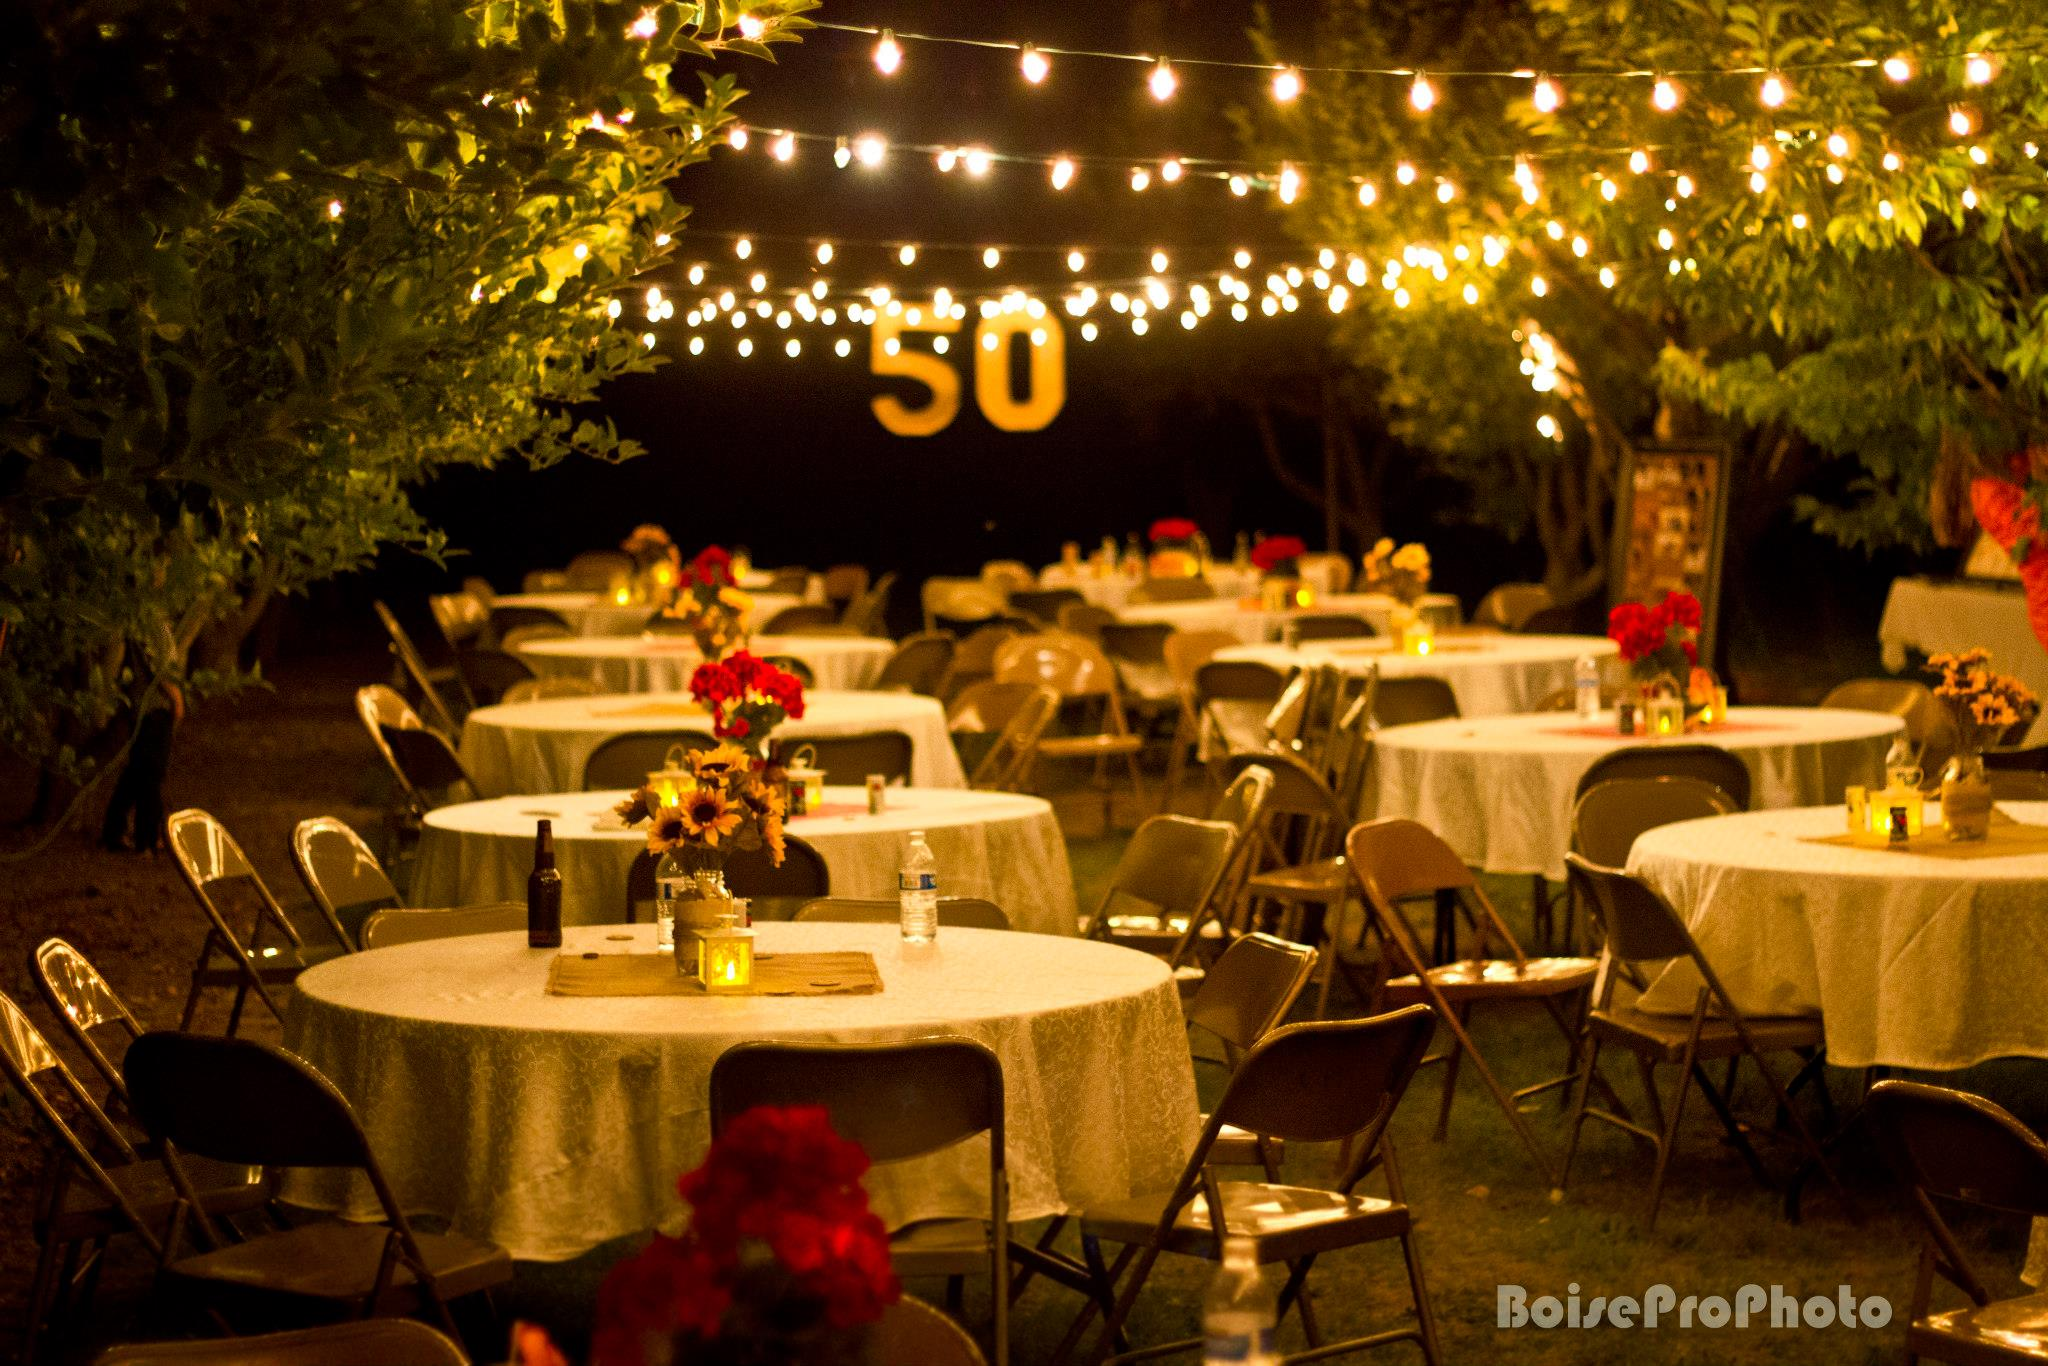 Diy 50th wedding anniversary party from salty bison for 50th anniversary decoration